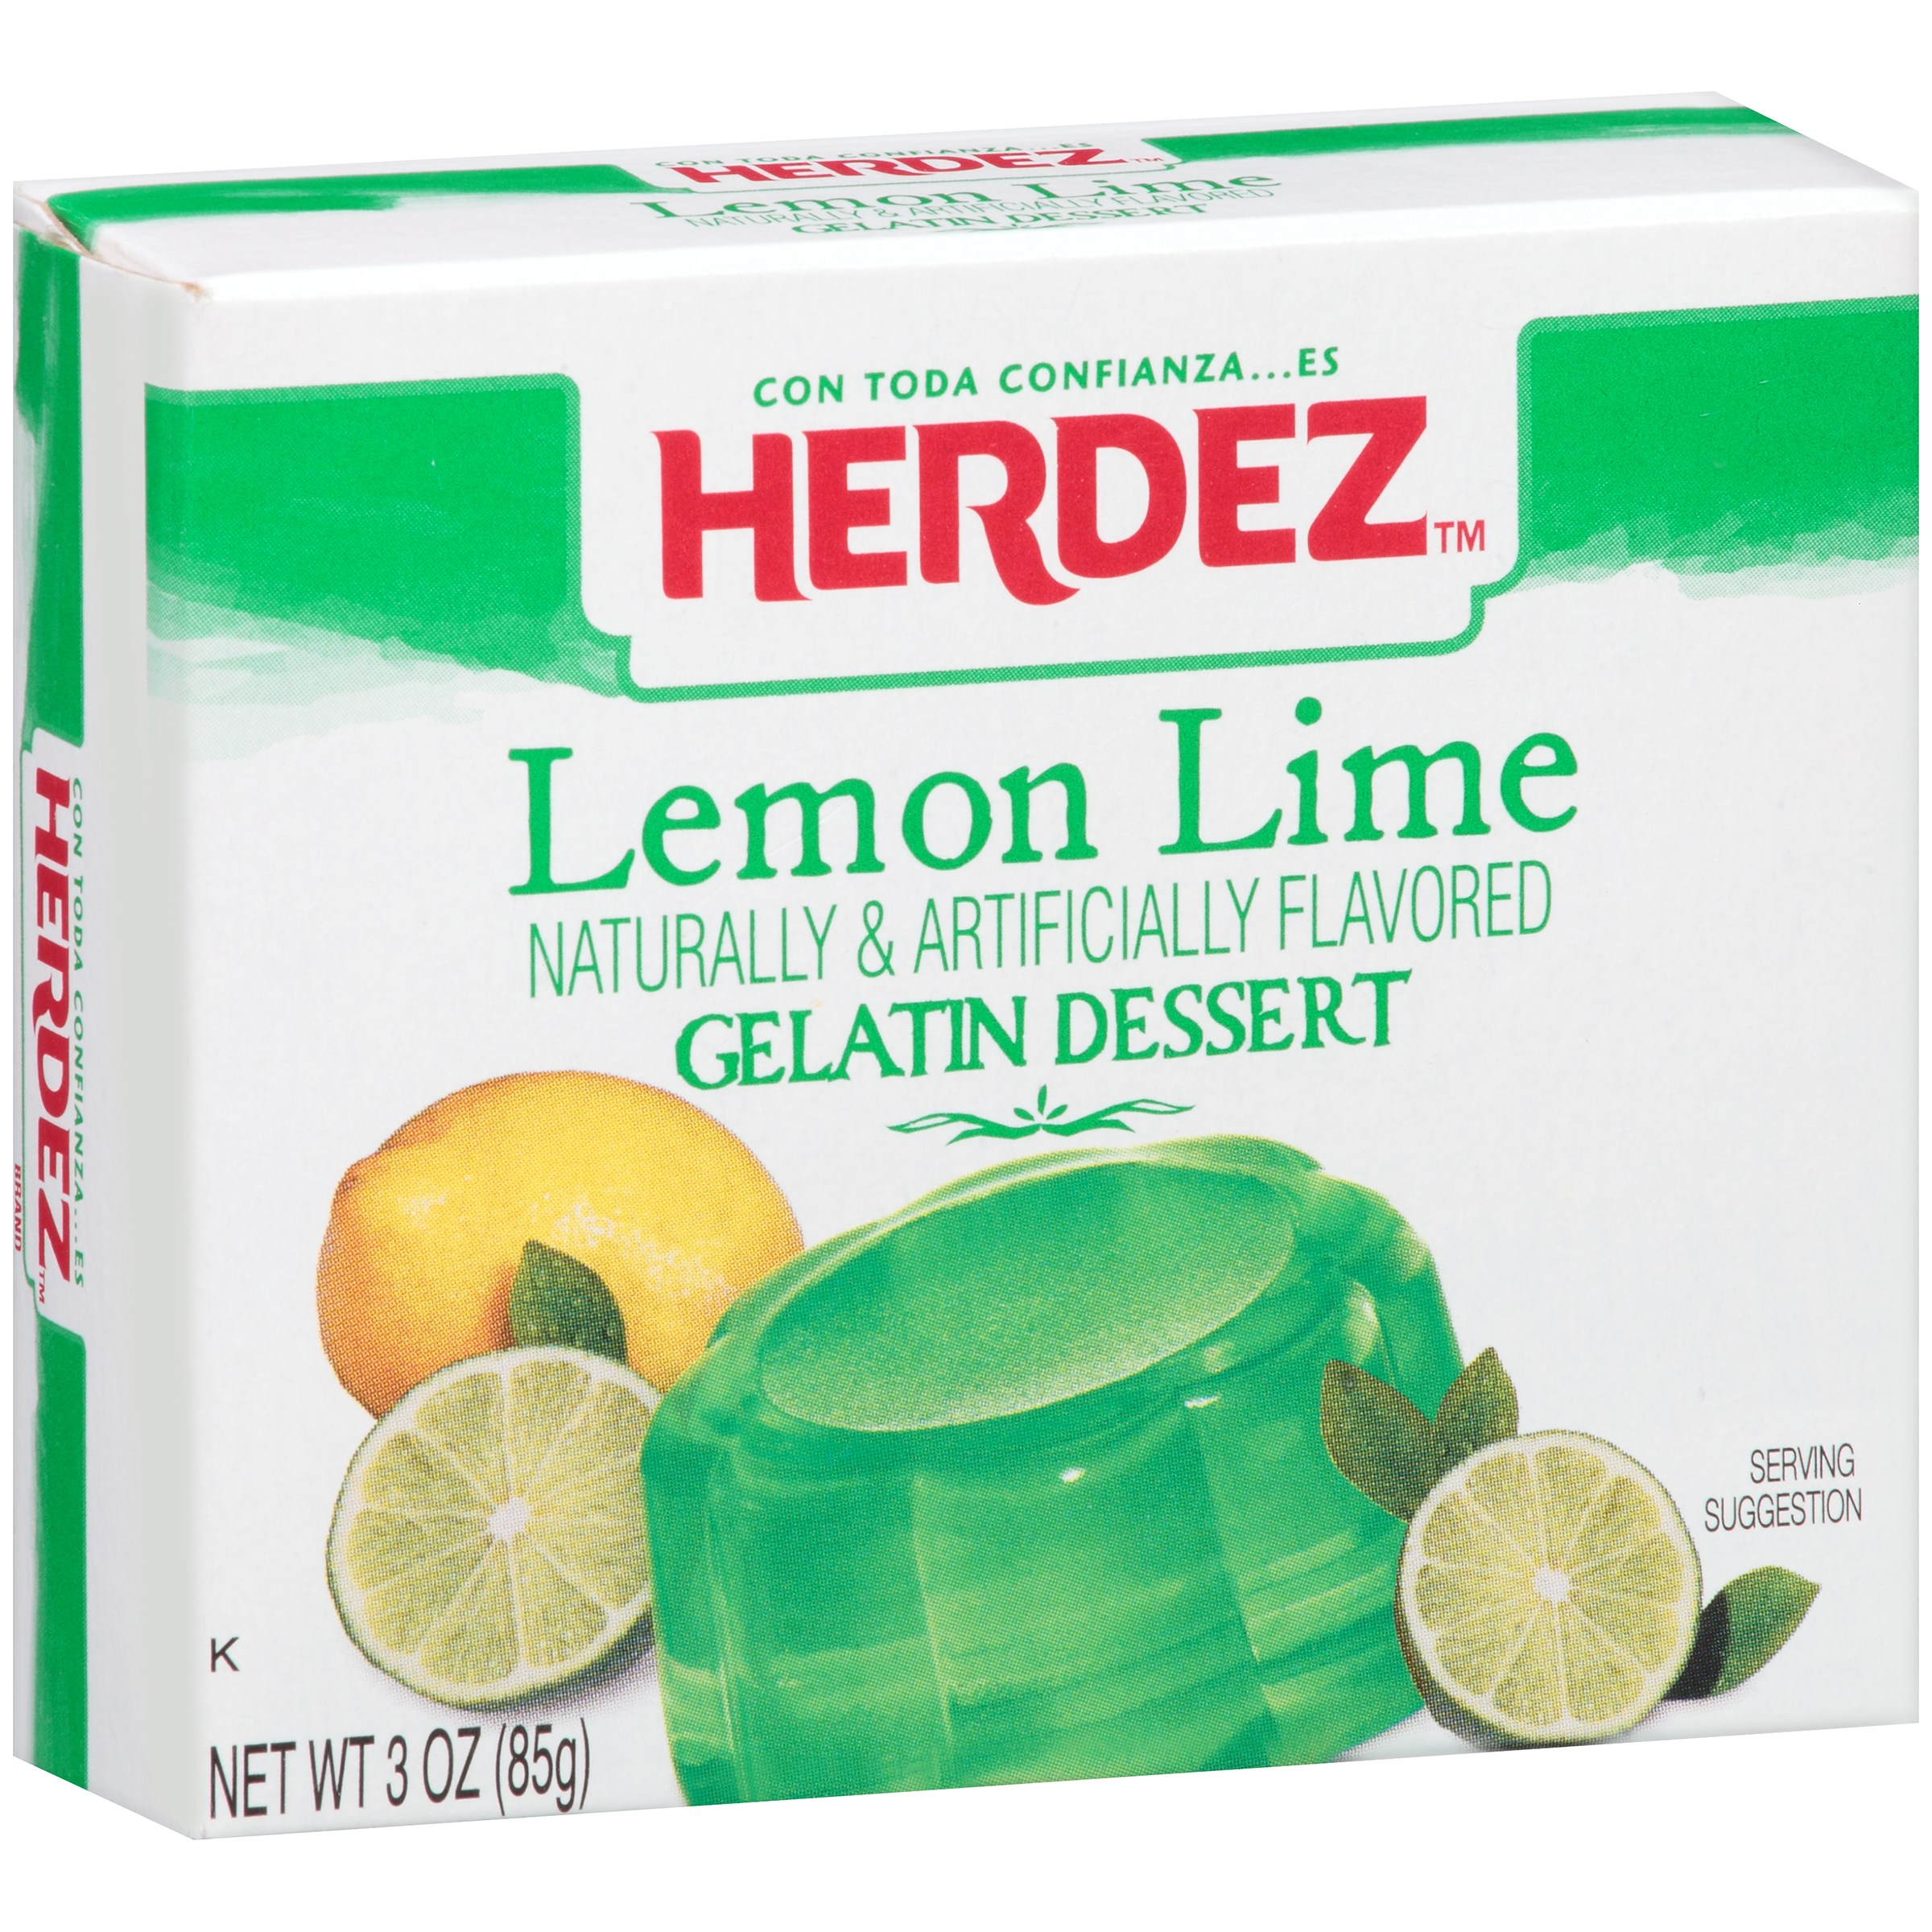 Herdez Lemon Lime Gelatin Dessert Mix, 3 oz by MEGAMEX FOODS, LLC